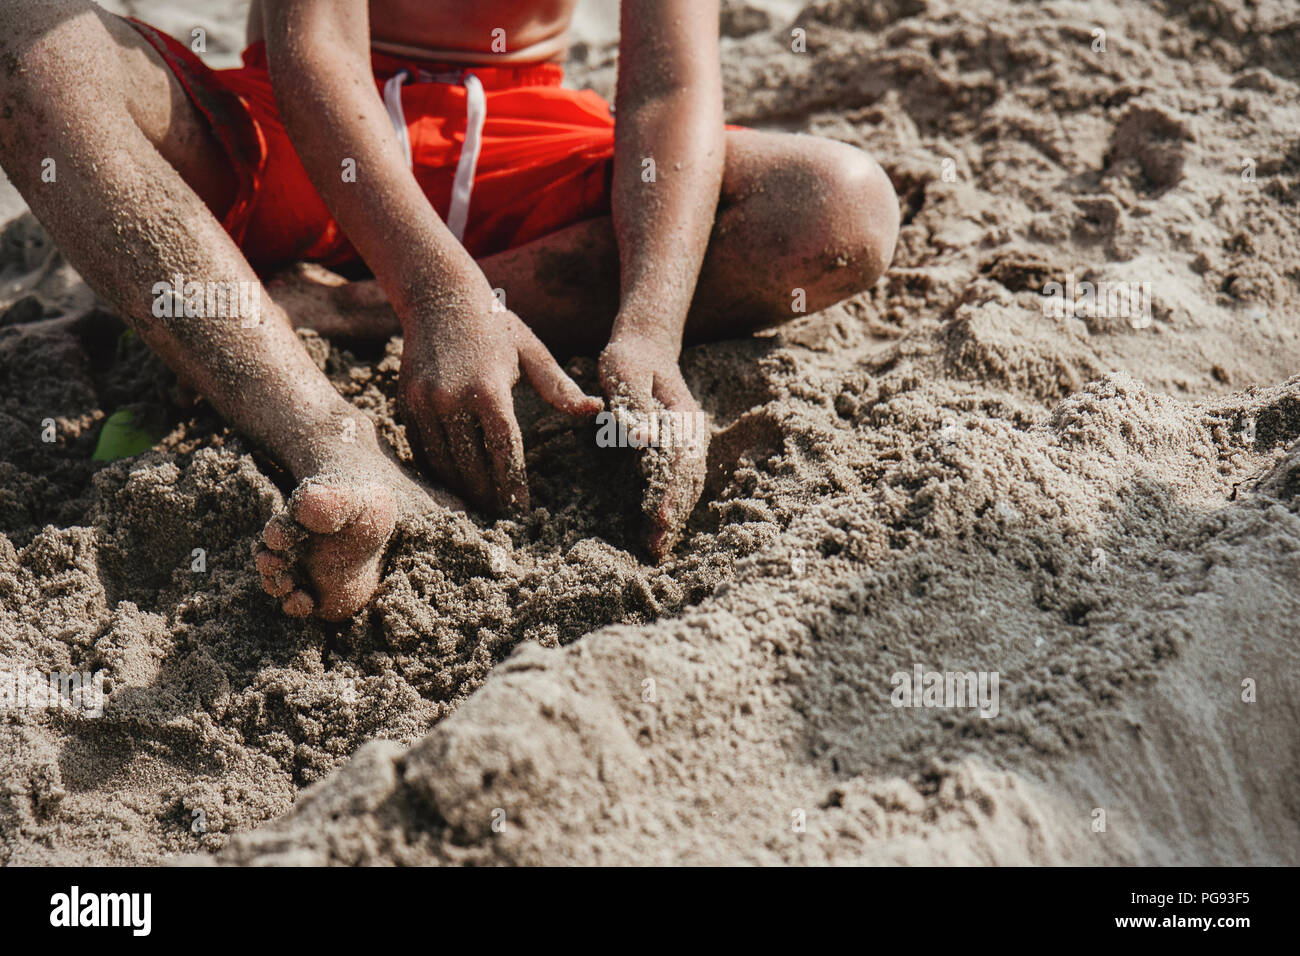 Young boy playing with sand at the beach. Close up of foot and hands, body parts. - Stock Image